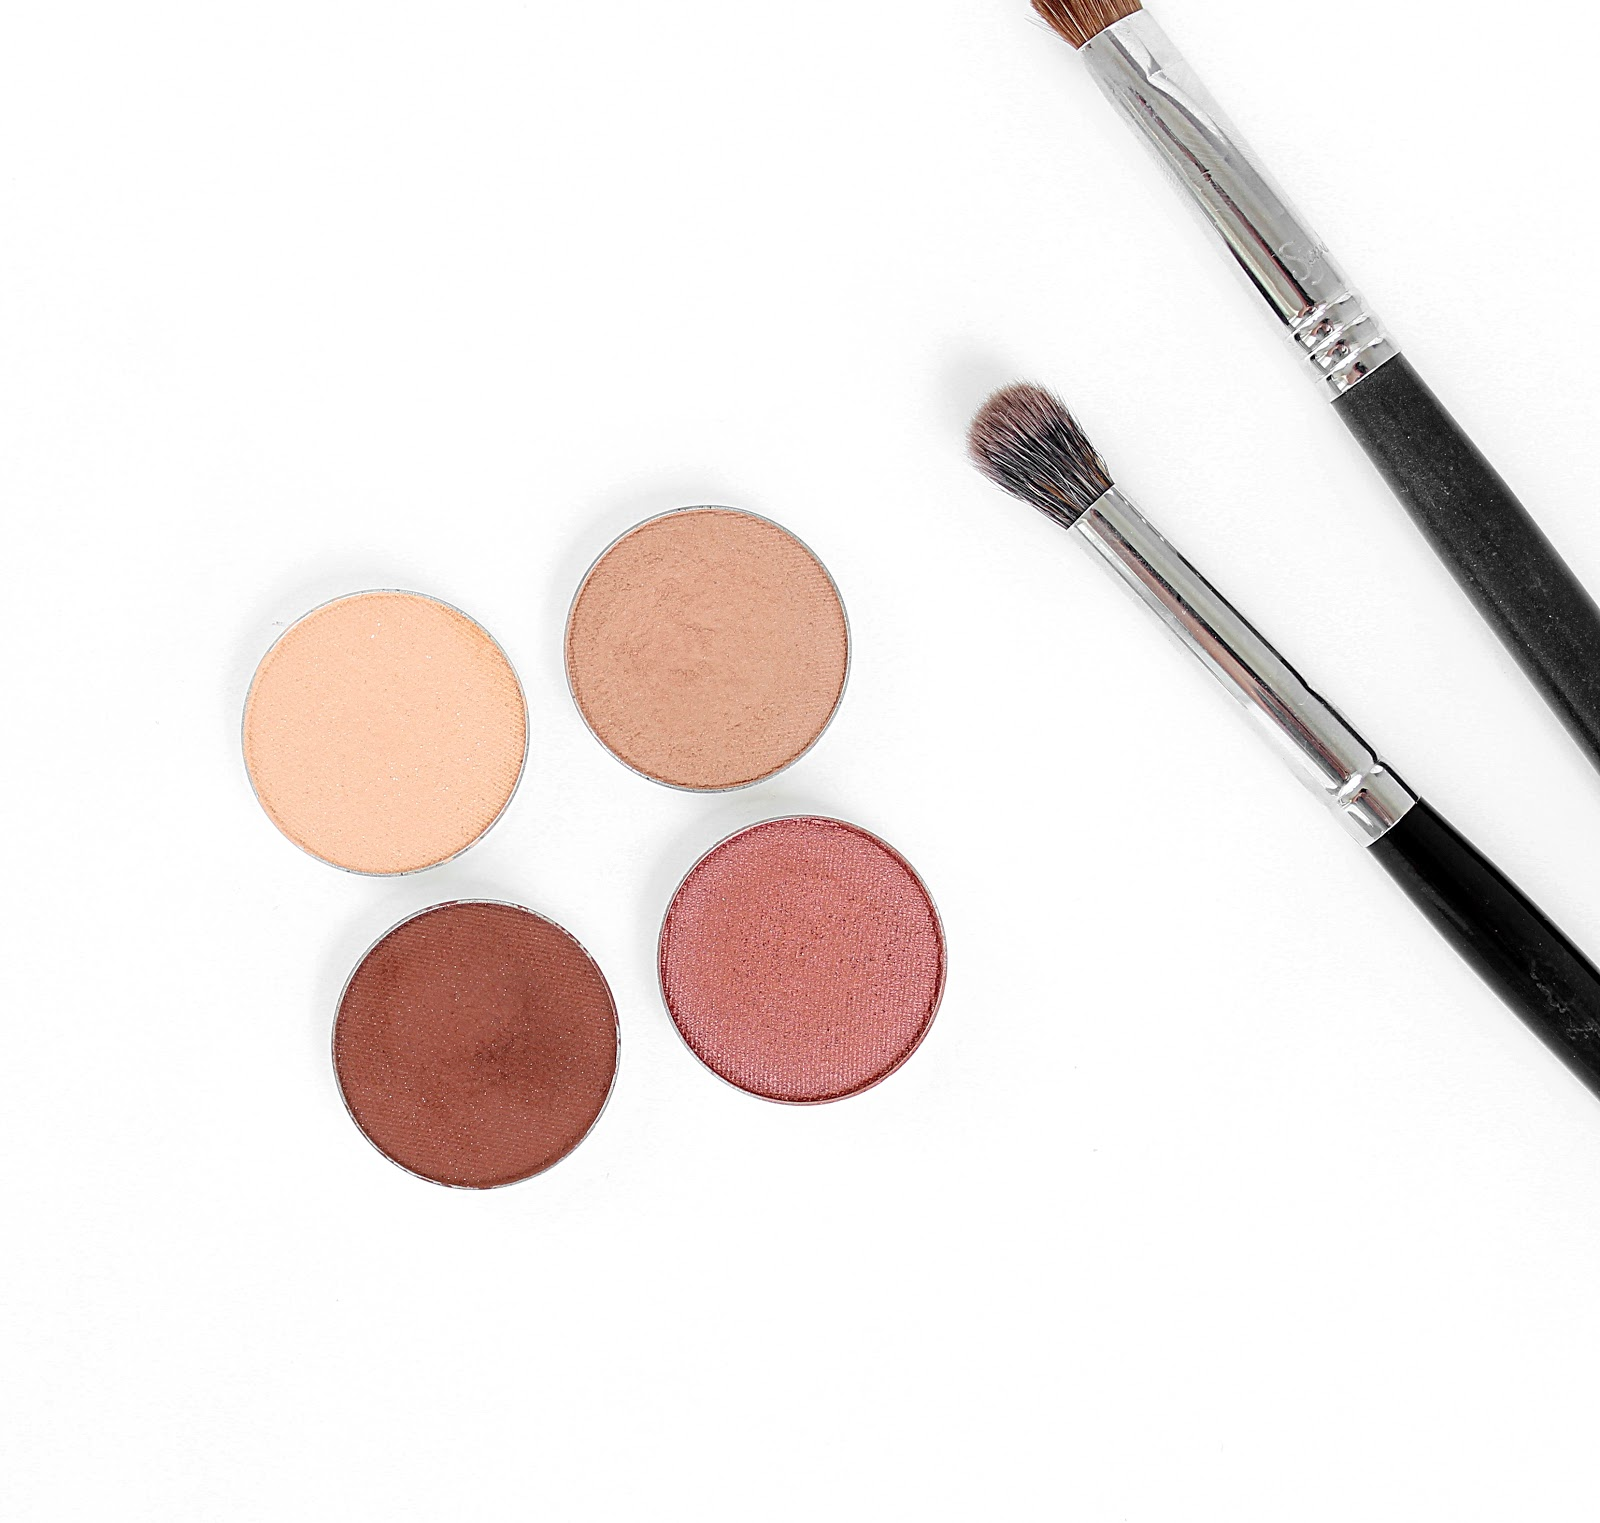 Makeup Geek Eye Shadow Quad - Warm